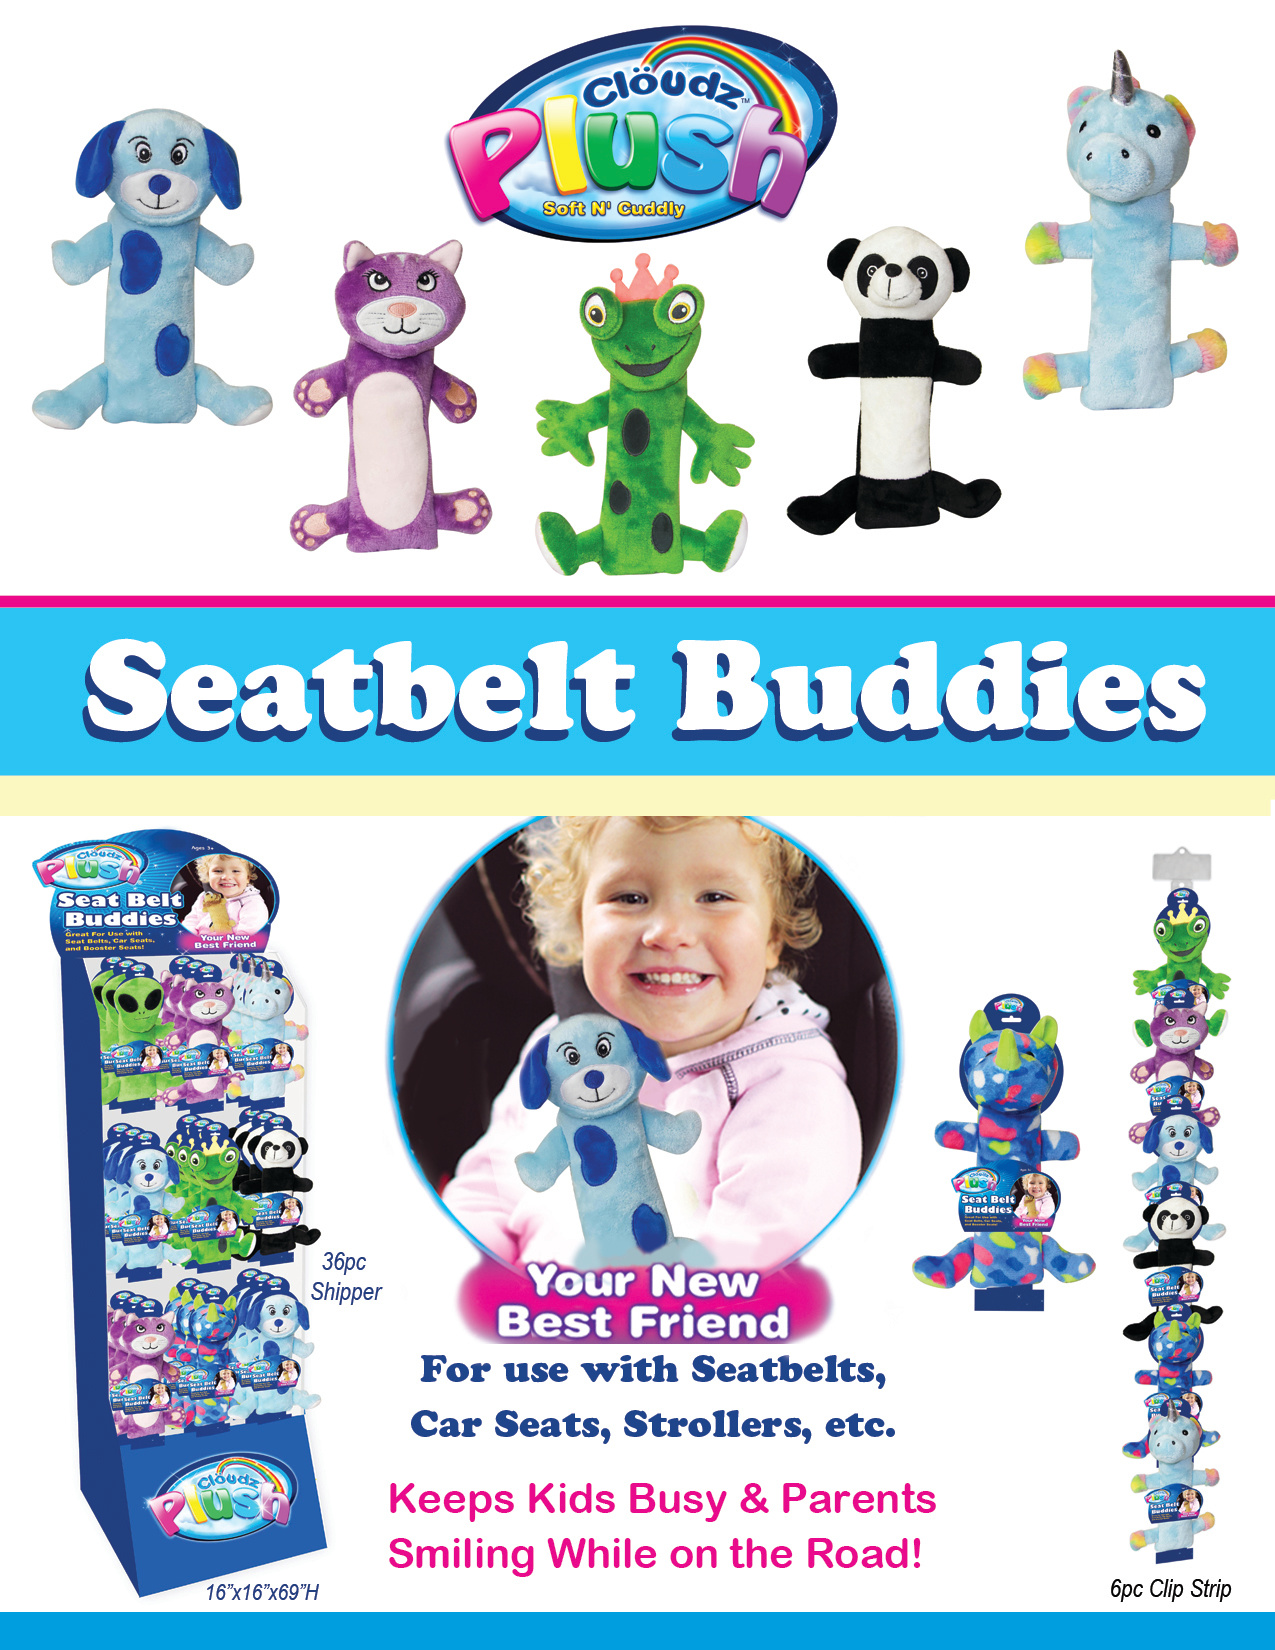 Seatbelt Buddies - 36pc Shipper